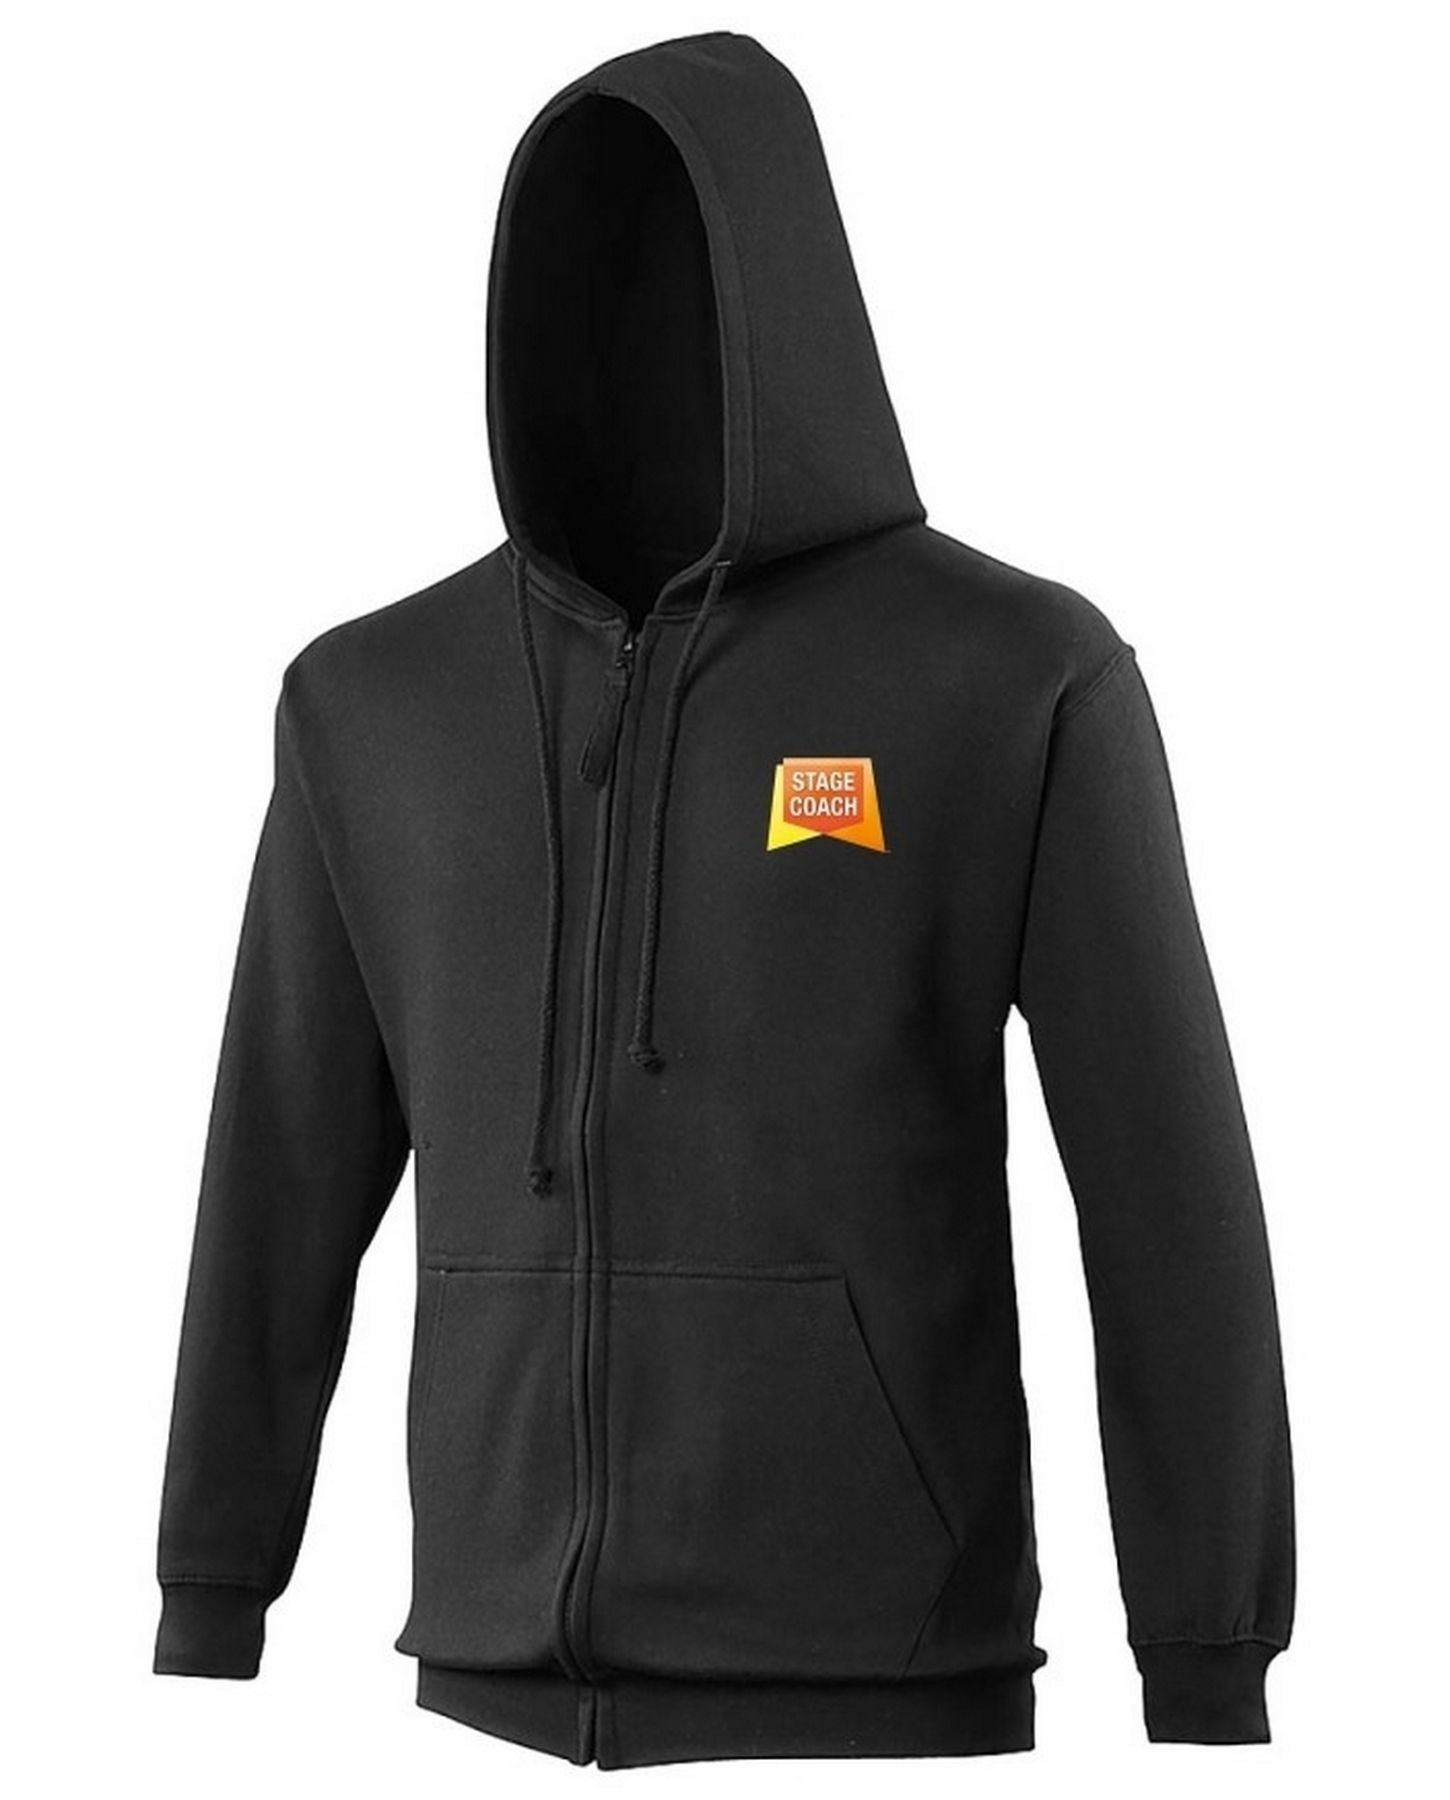 Stagecoach Huntingdon & Newmarket – Adults Zip Hoodie